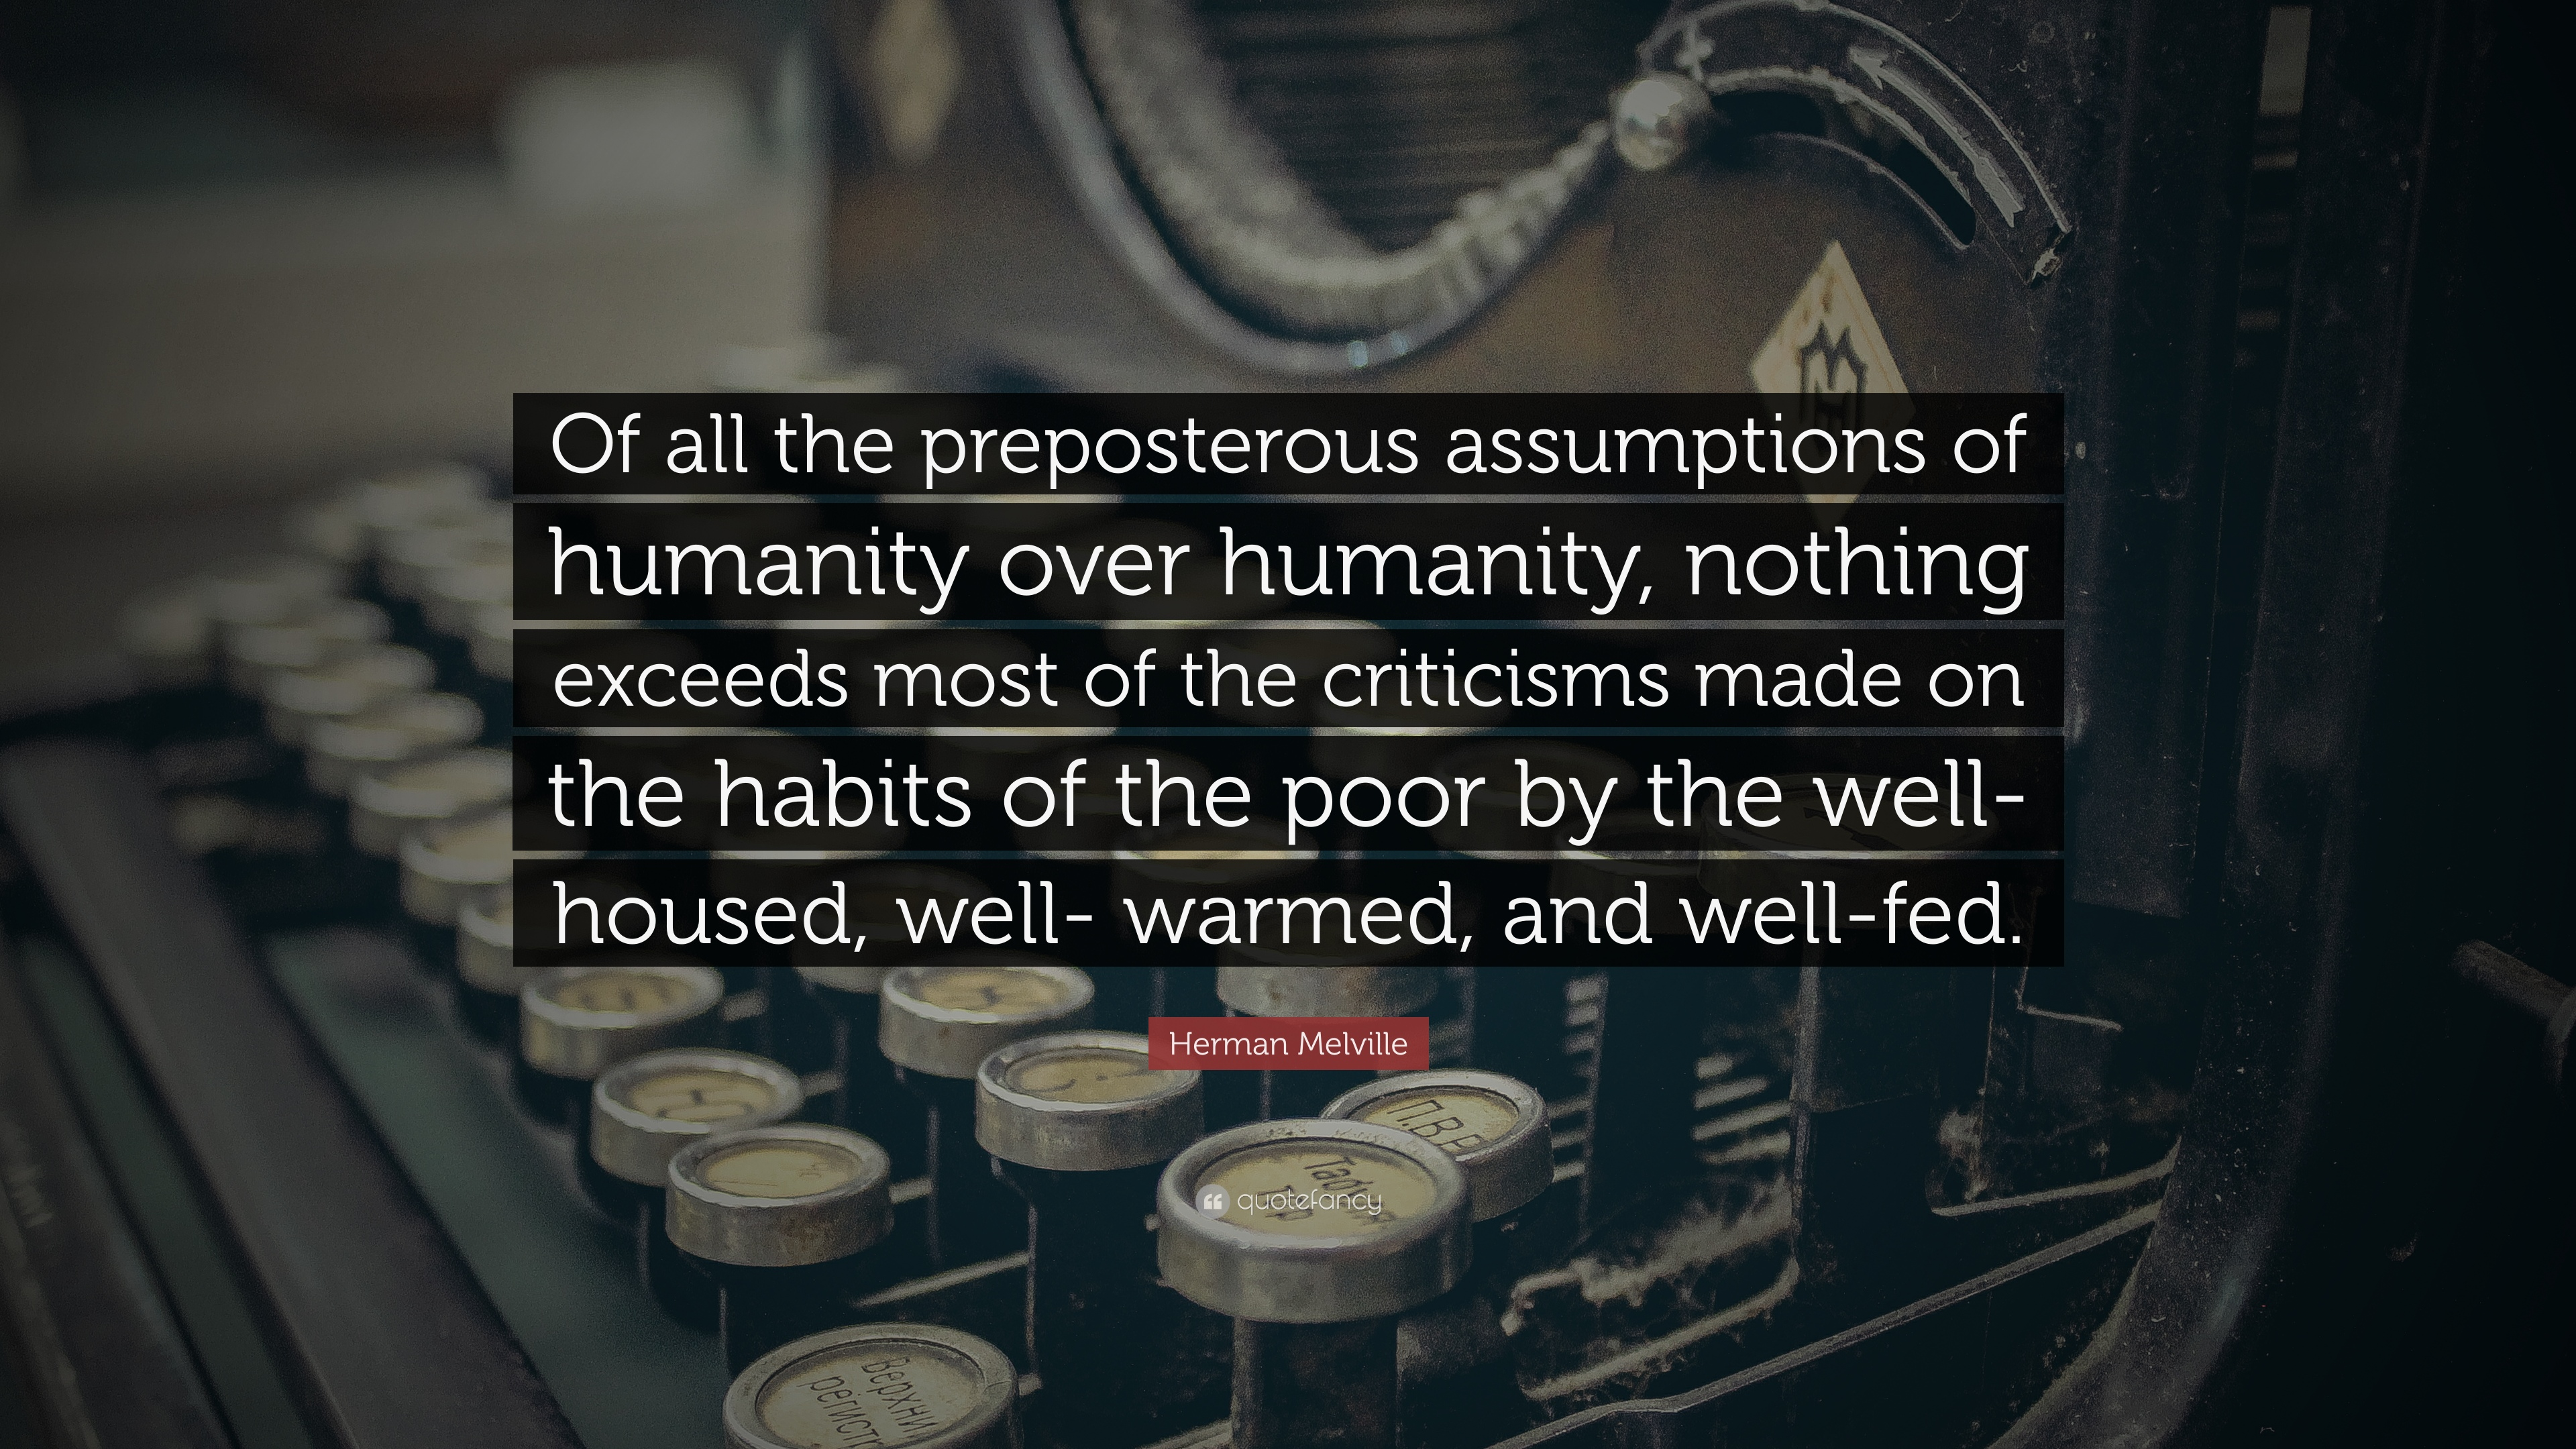 Herman Melville Quotes | Herman Melville Quote Of All The Preposterous Assumptions Of